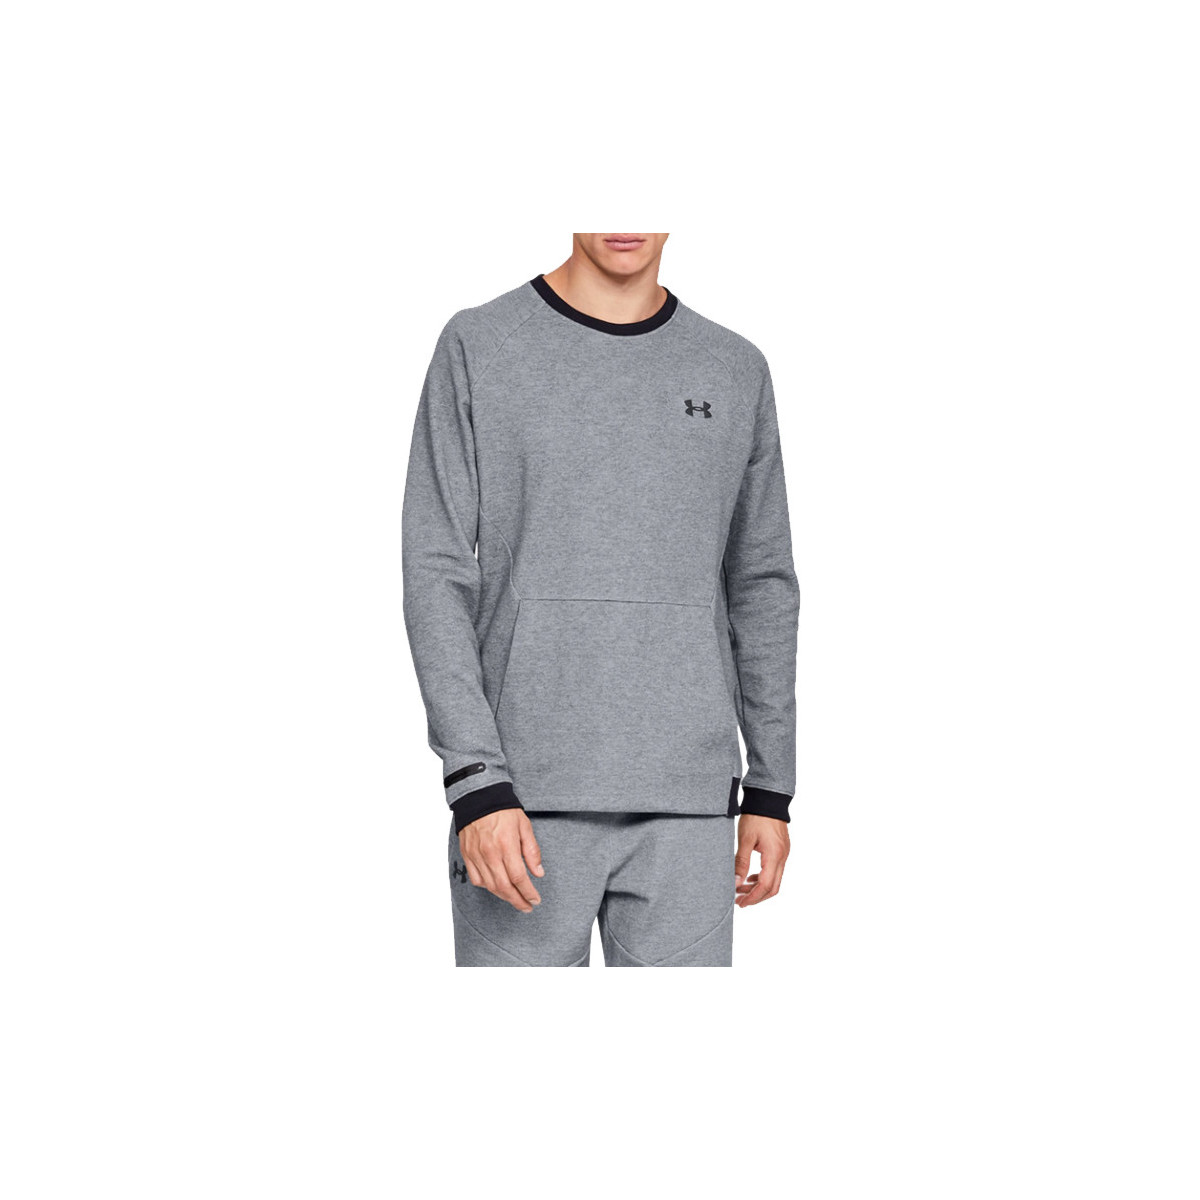 Sweatshirts Under Armour  Unstoppable 2X Knit Crew 1329712-035